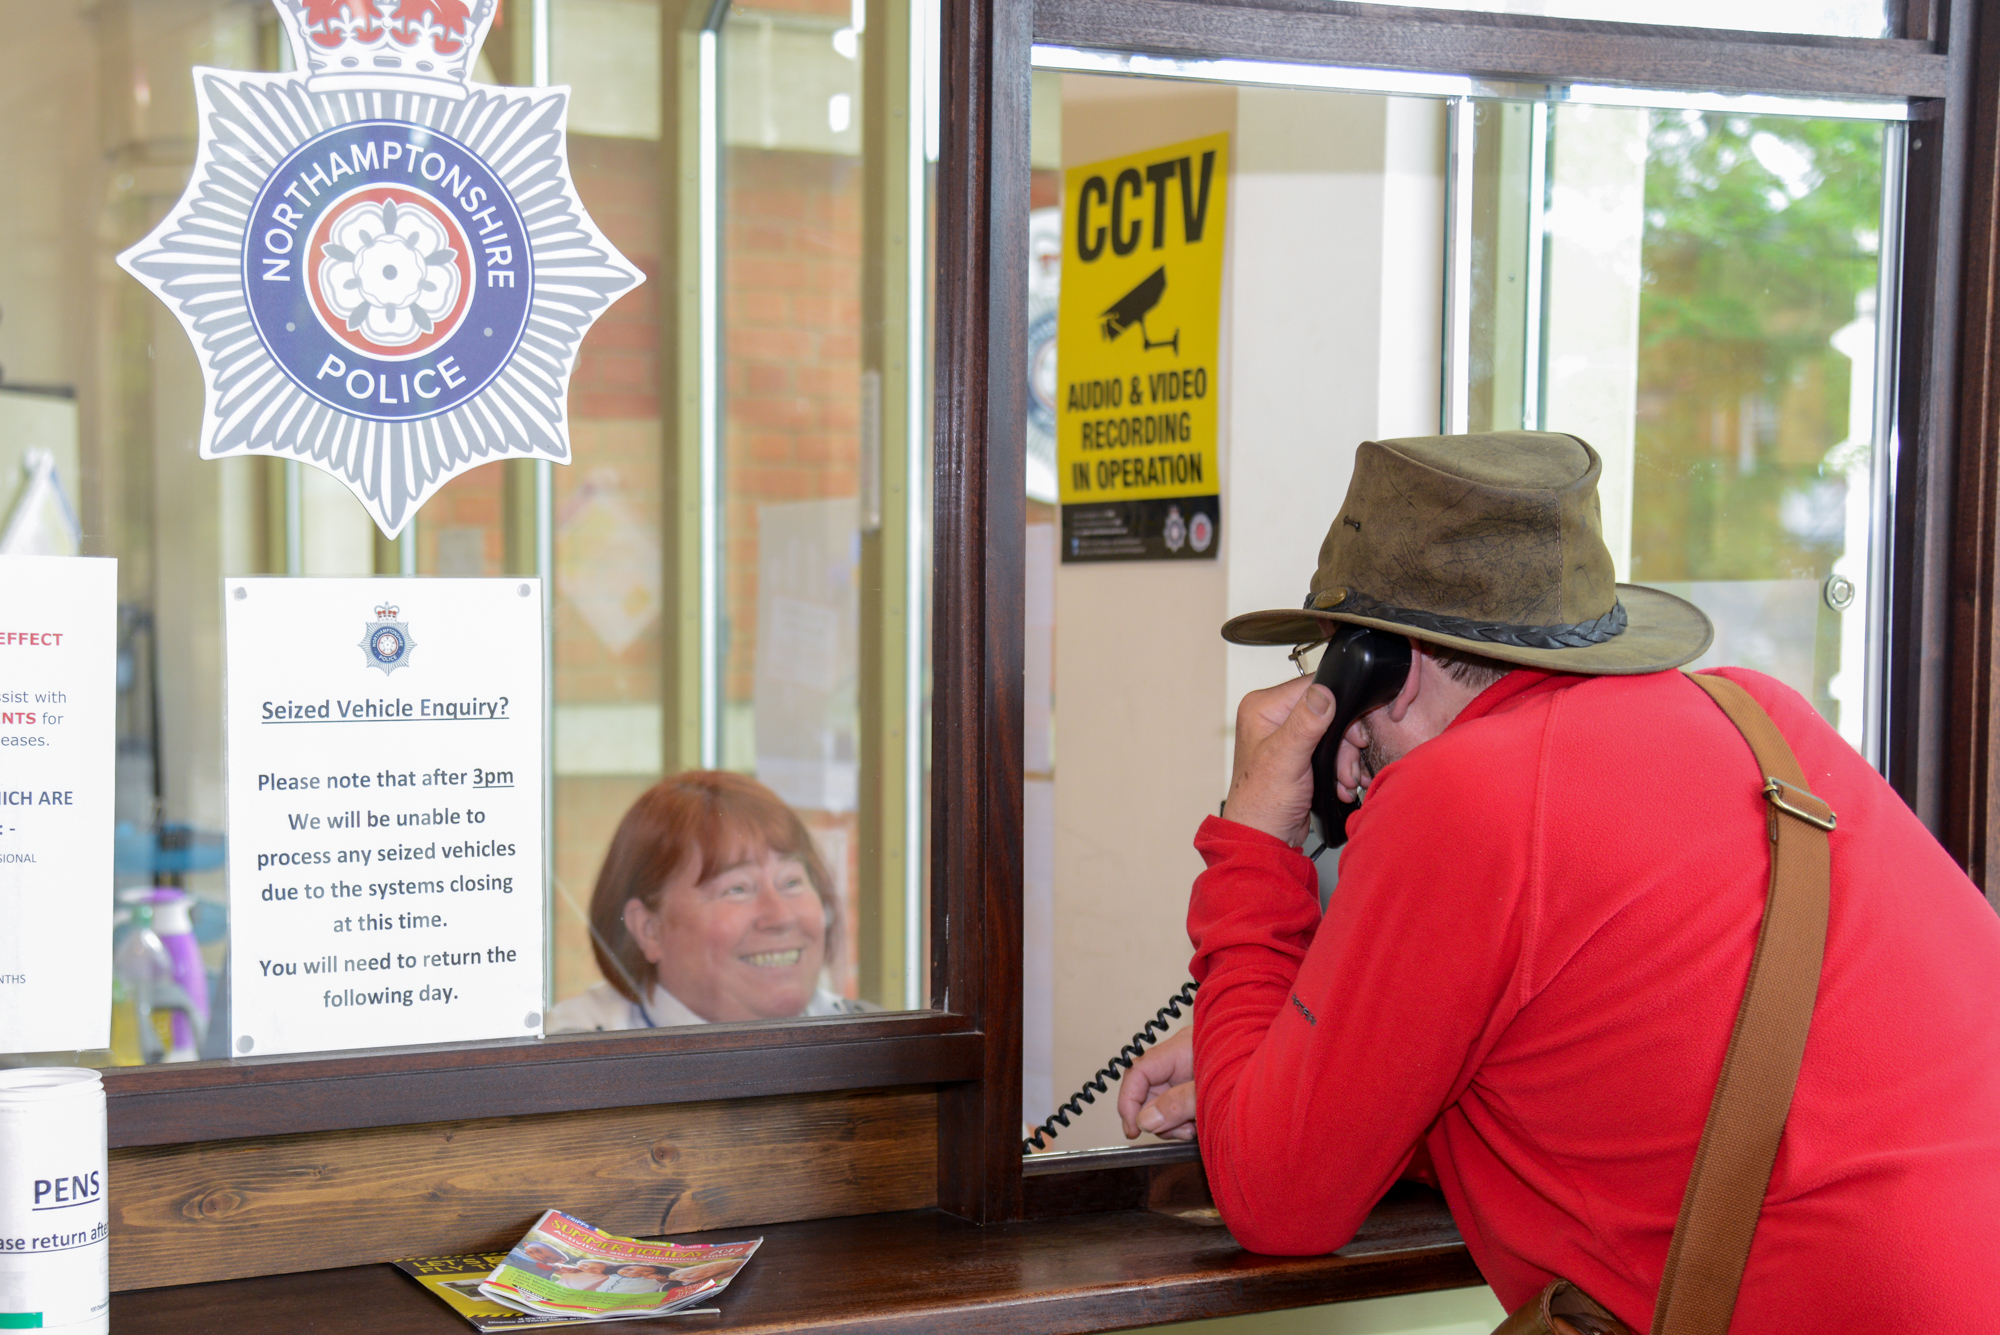 One of the police front counters that are available in the county